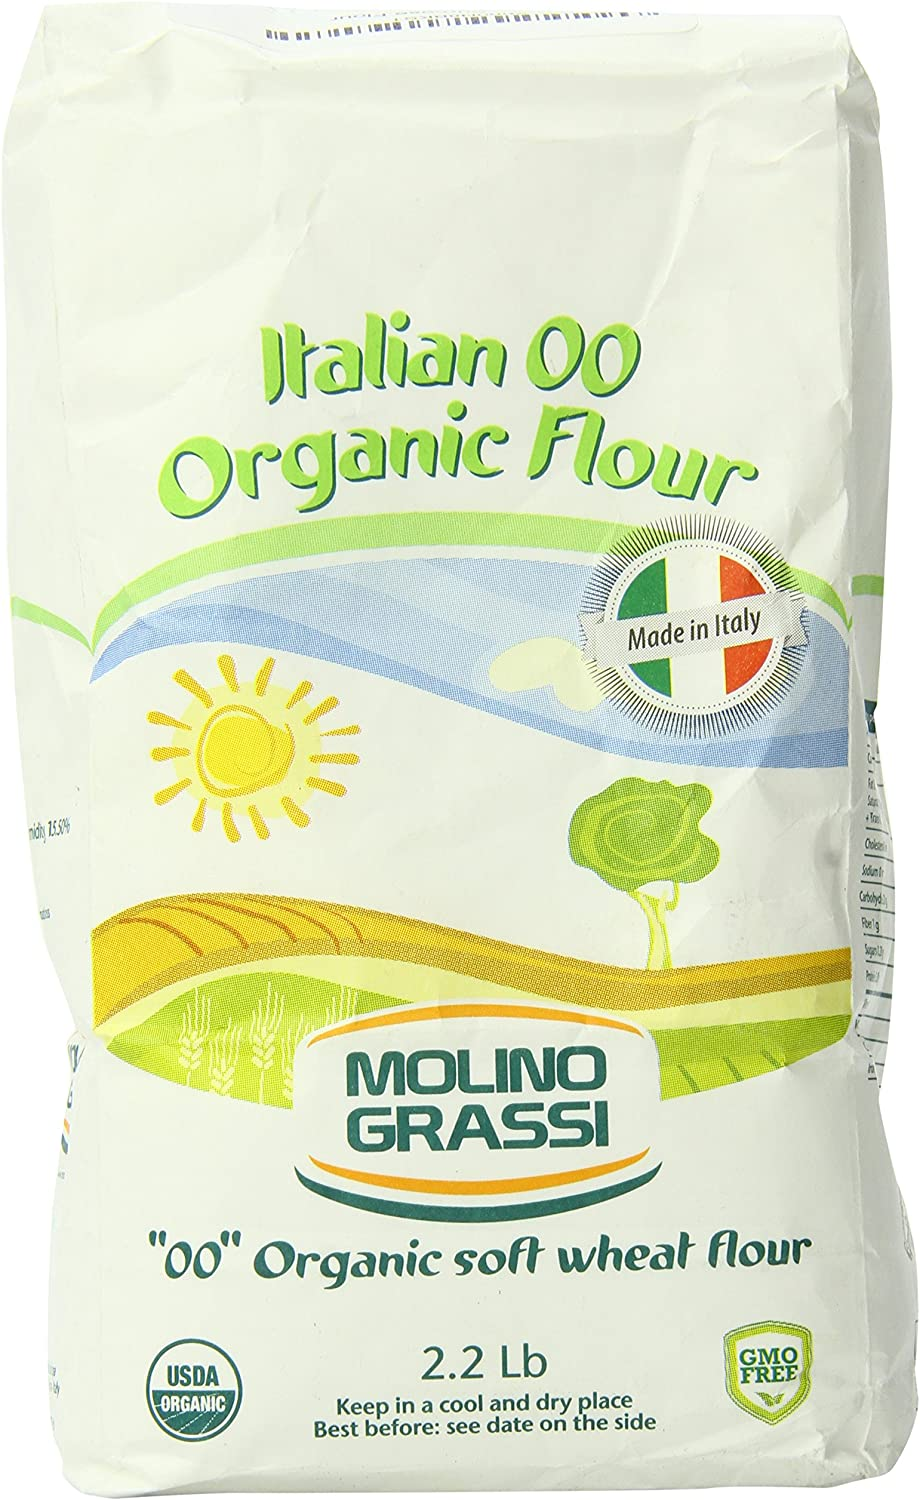 Molino Grassi White Package with Green